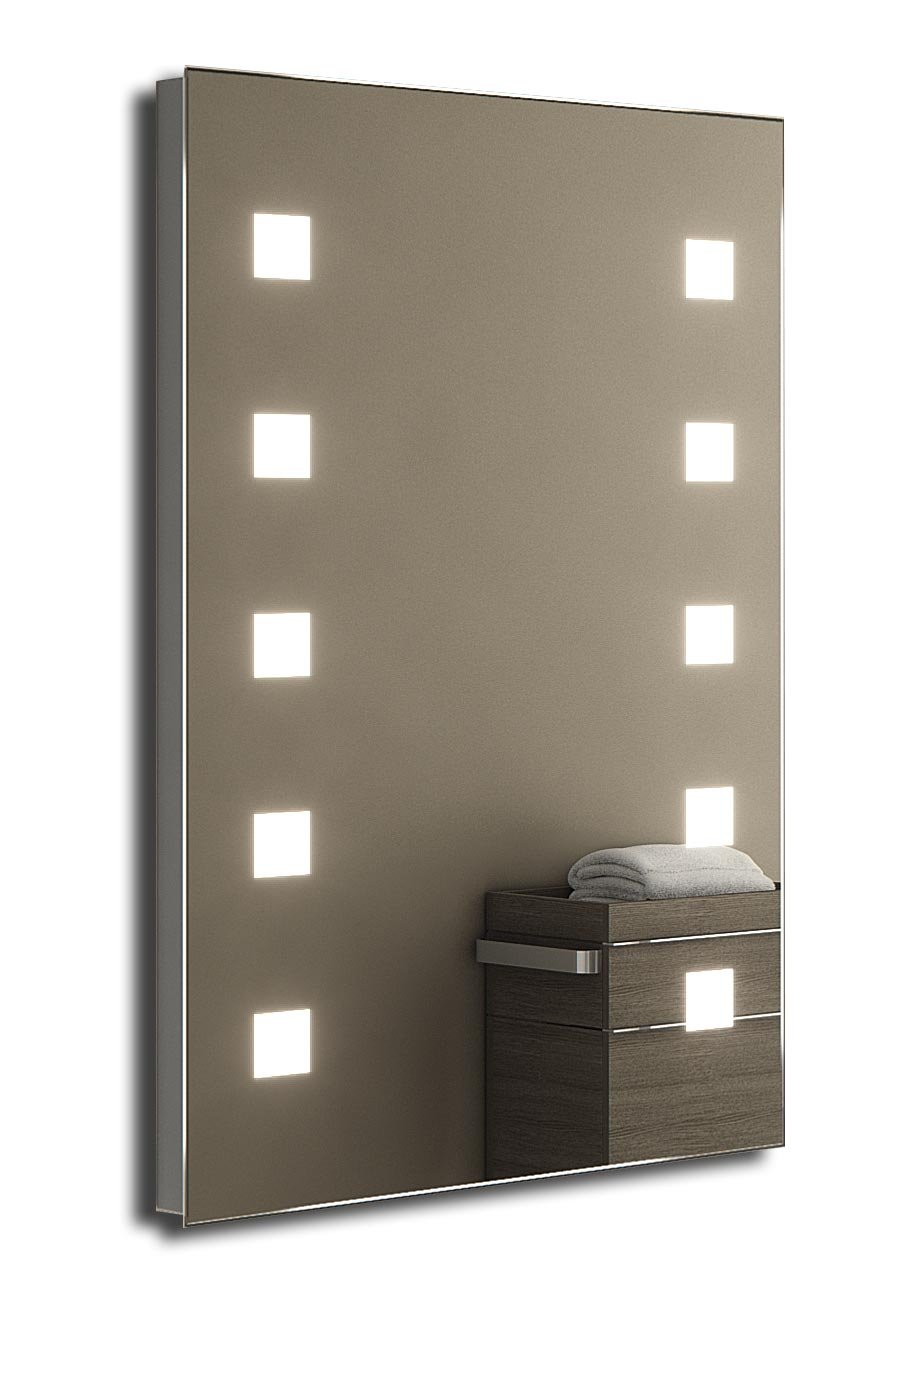 durable service Veena Shaver LED Bathroom Mirror With Demister Pad & Sensor k210i